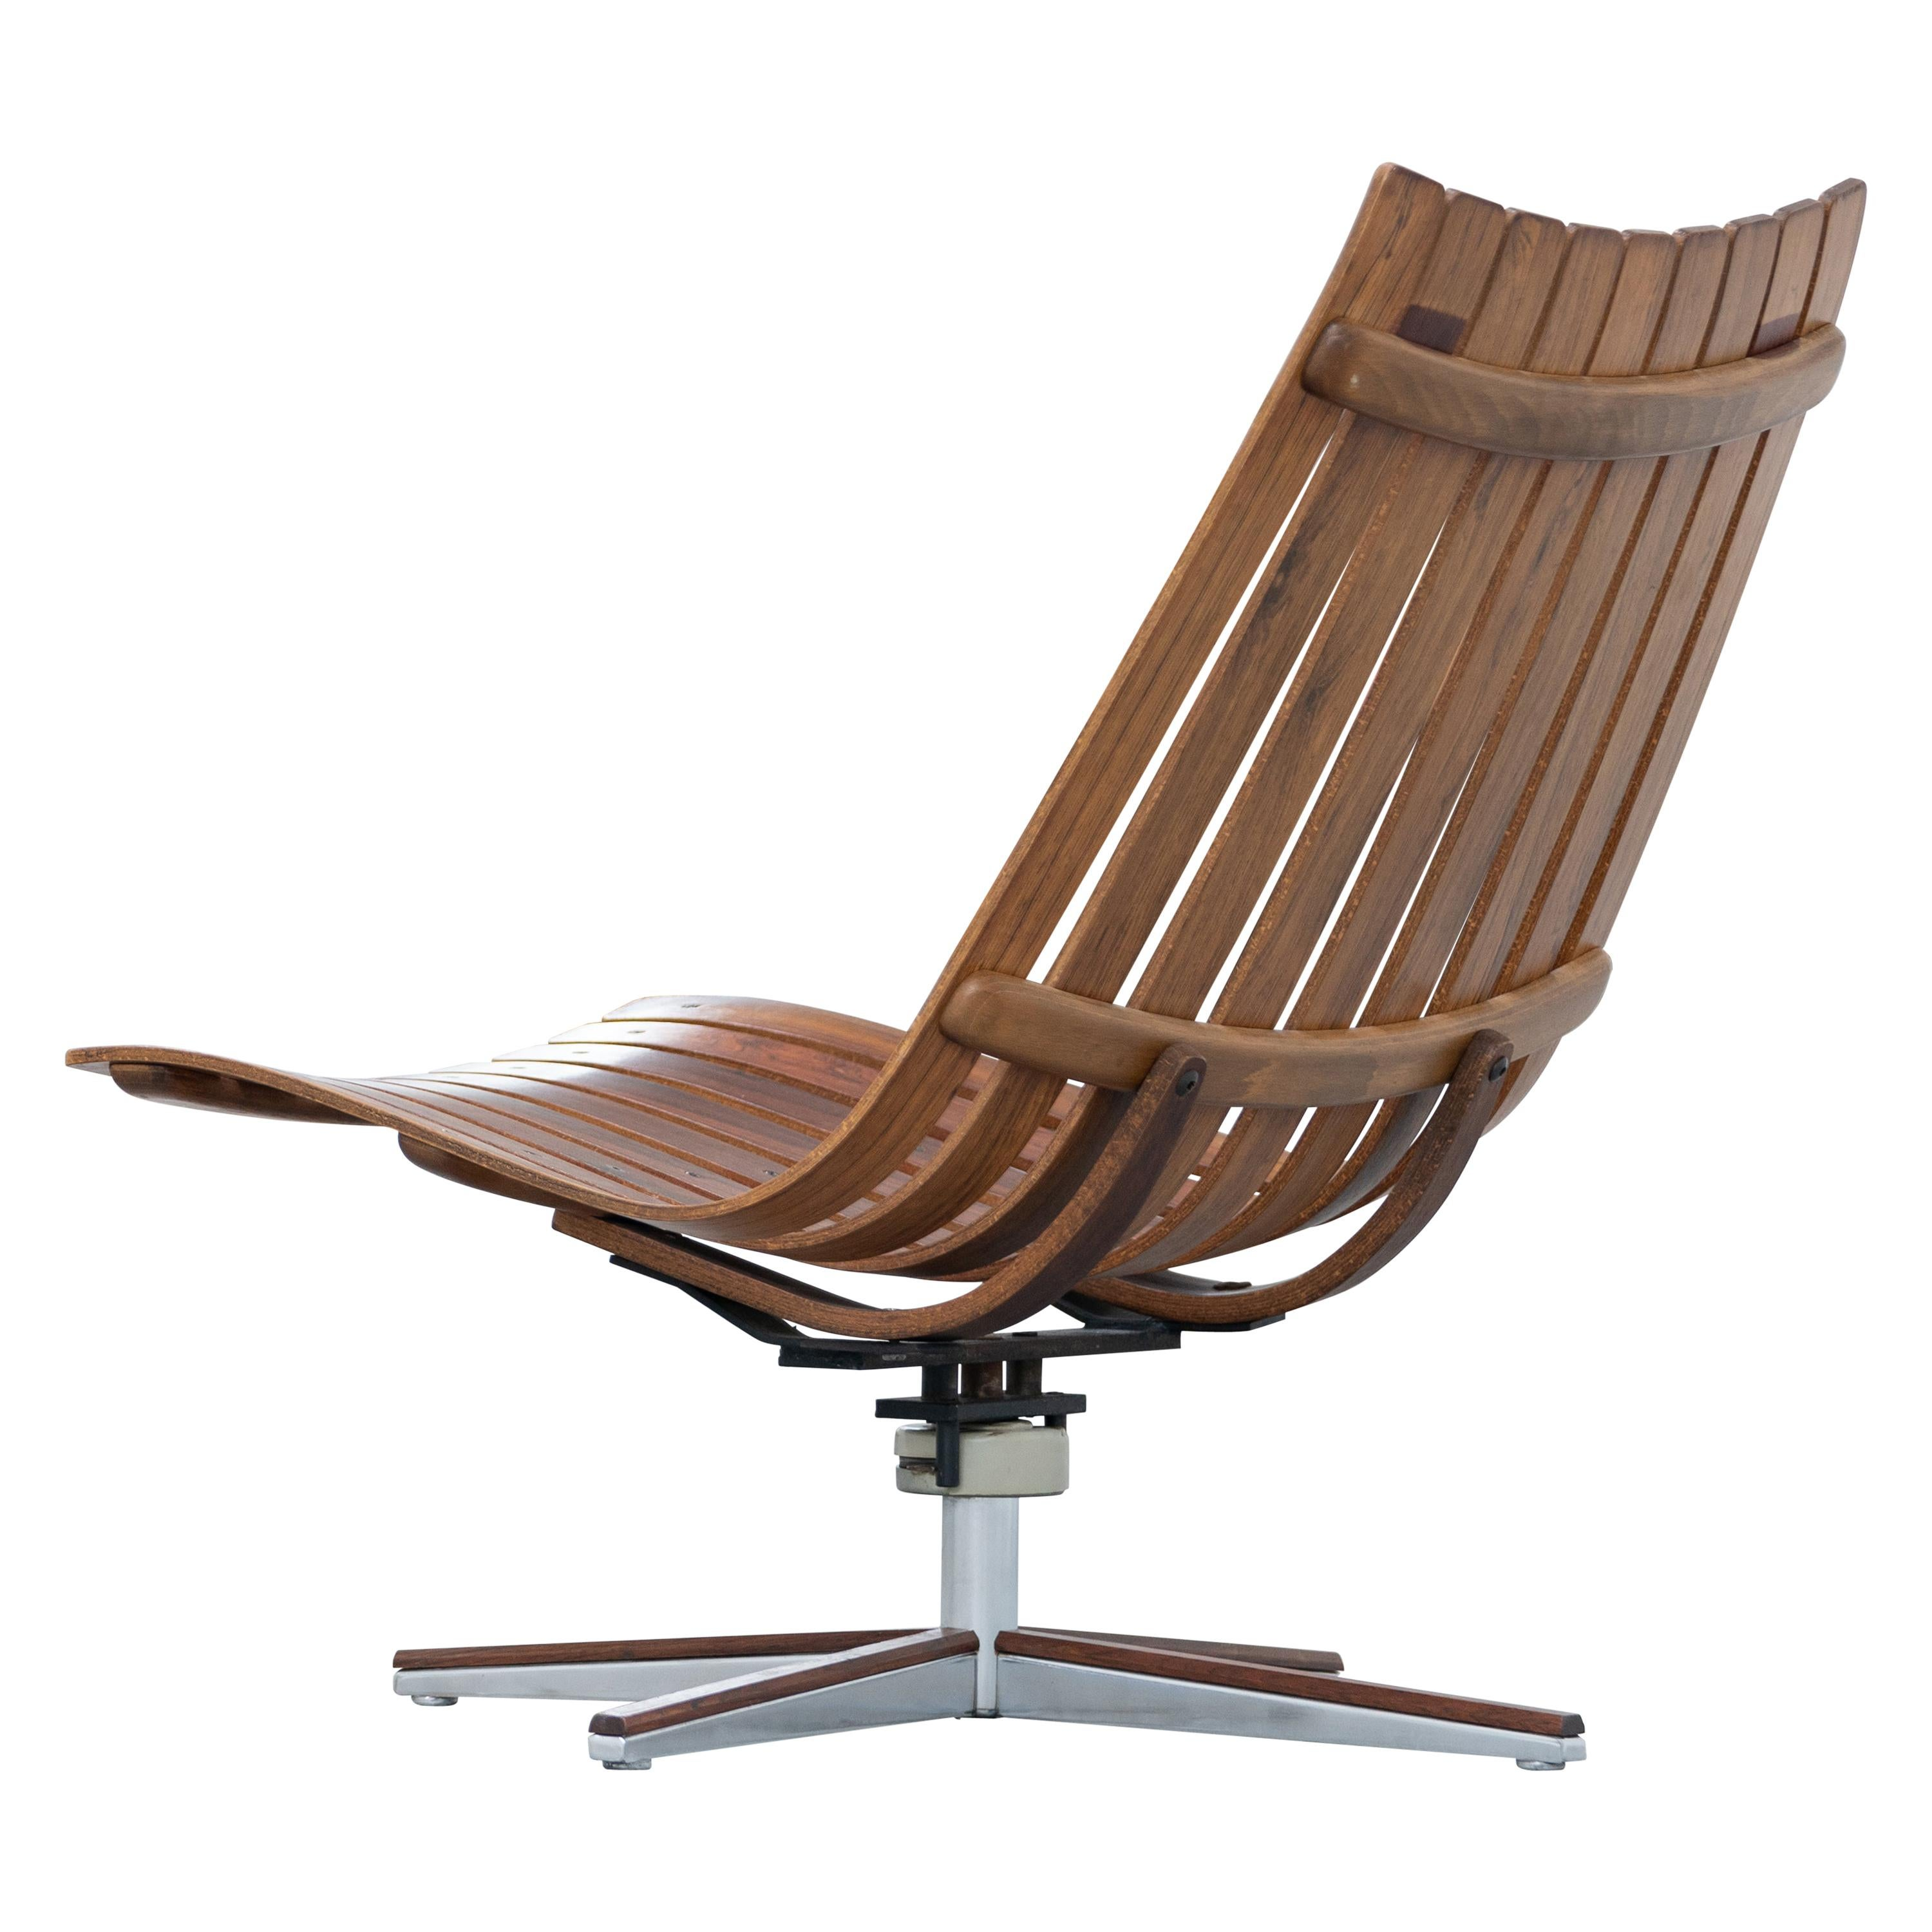 Hans Brattrud, Scandia Swivel Lounge Chair, 1957 for Hove Møbler, Norway